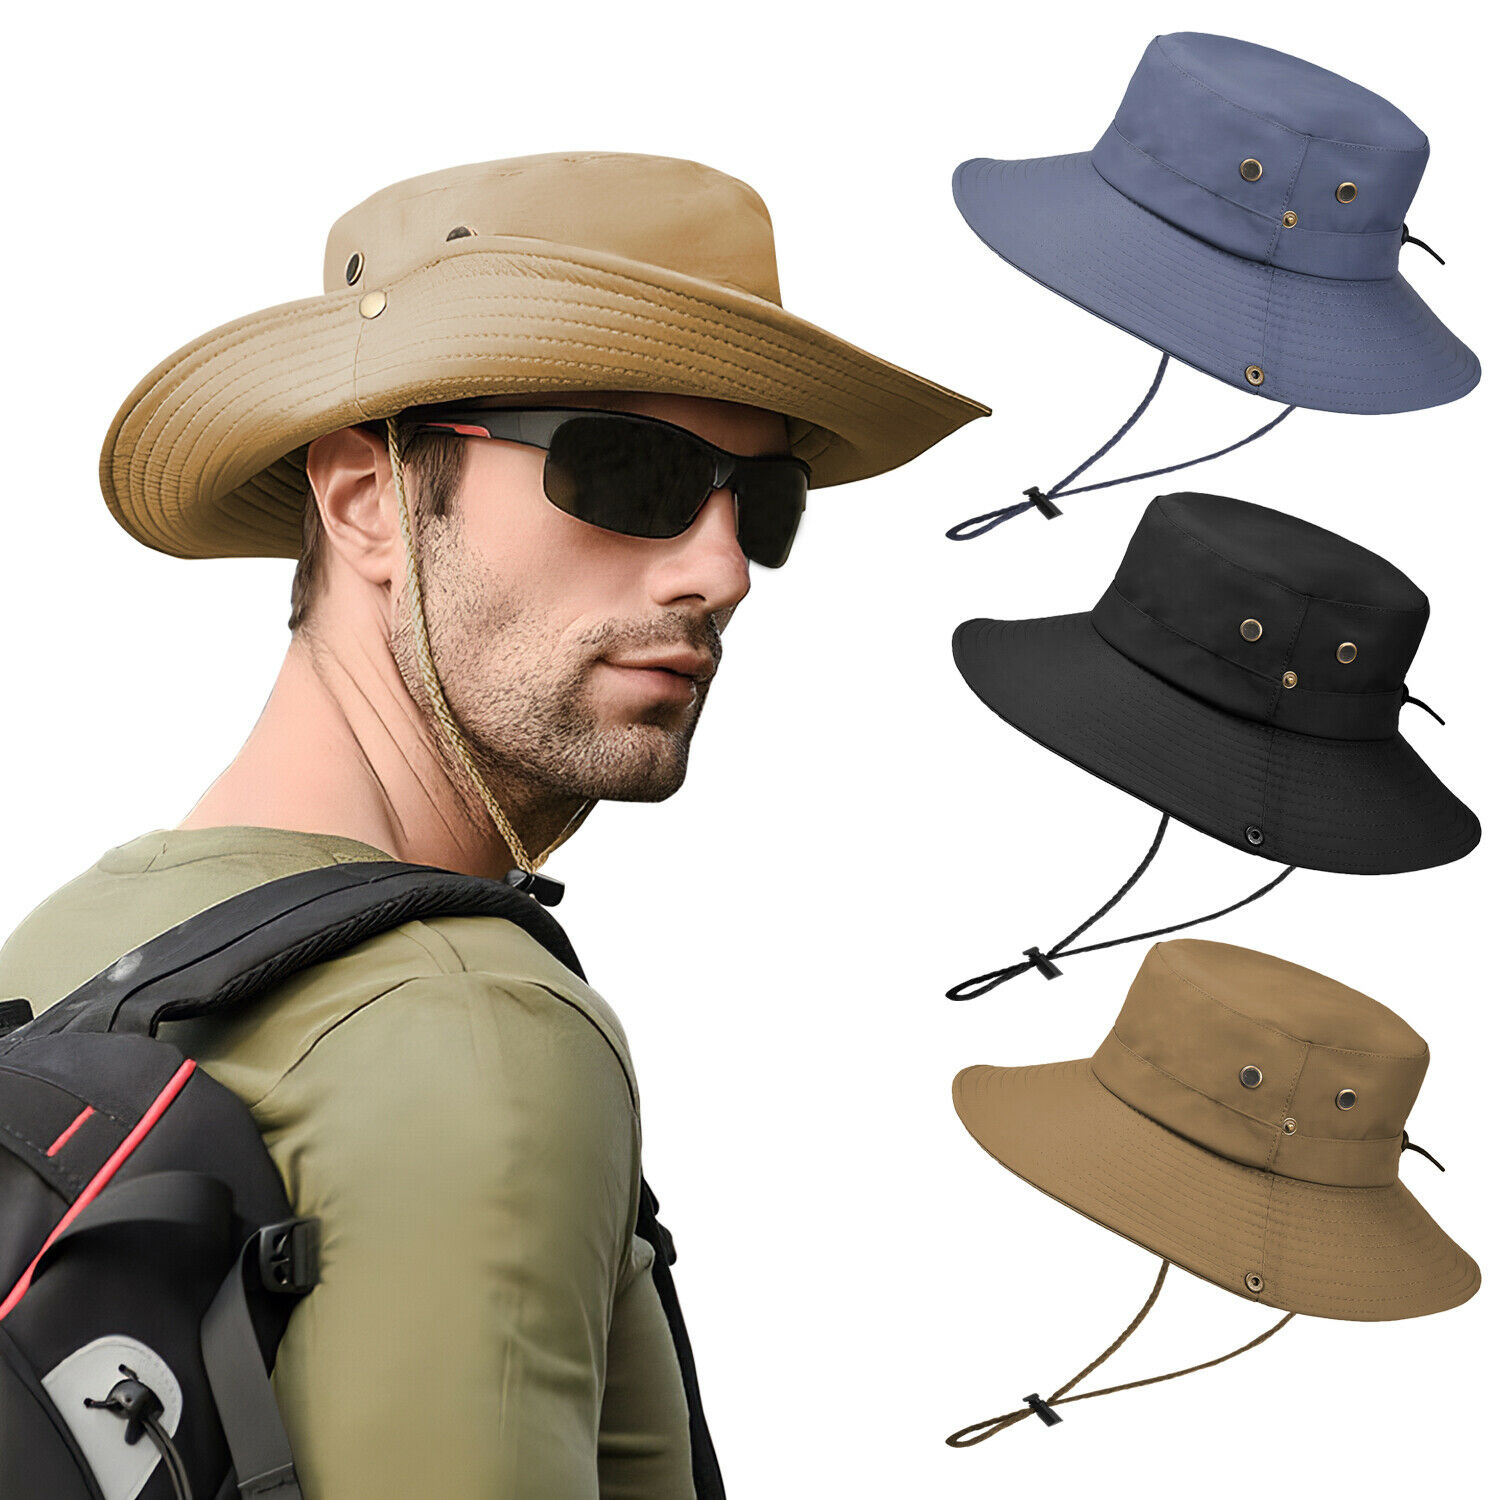 Sun Visor Hat UV Protection Cap Outdoor Wide Brim Fishing Hiking Trave... - s l1600